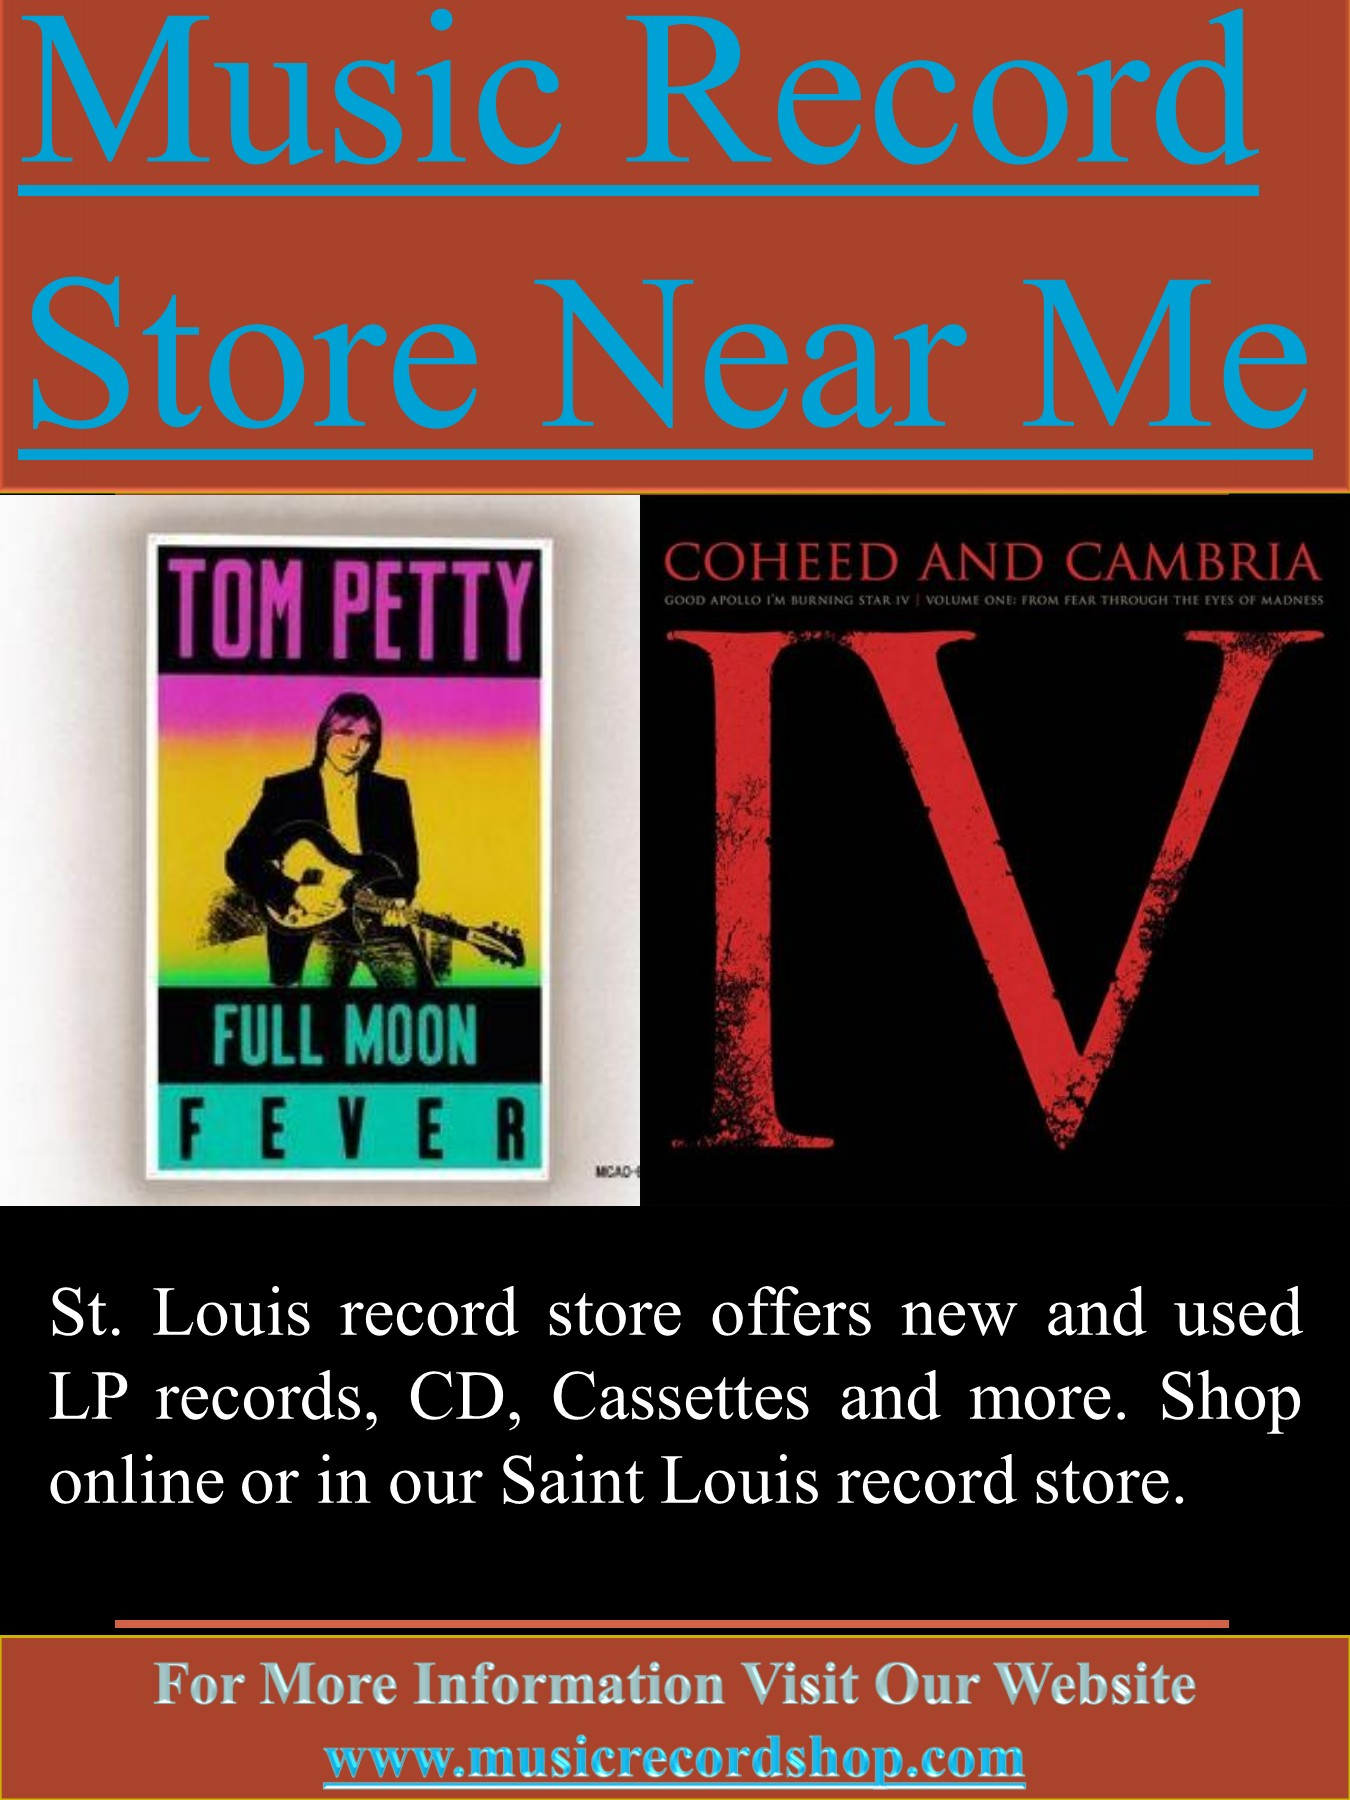 Music Record Store Near Me Pages 1 - 10 - Text Version | AnyFlip